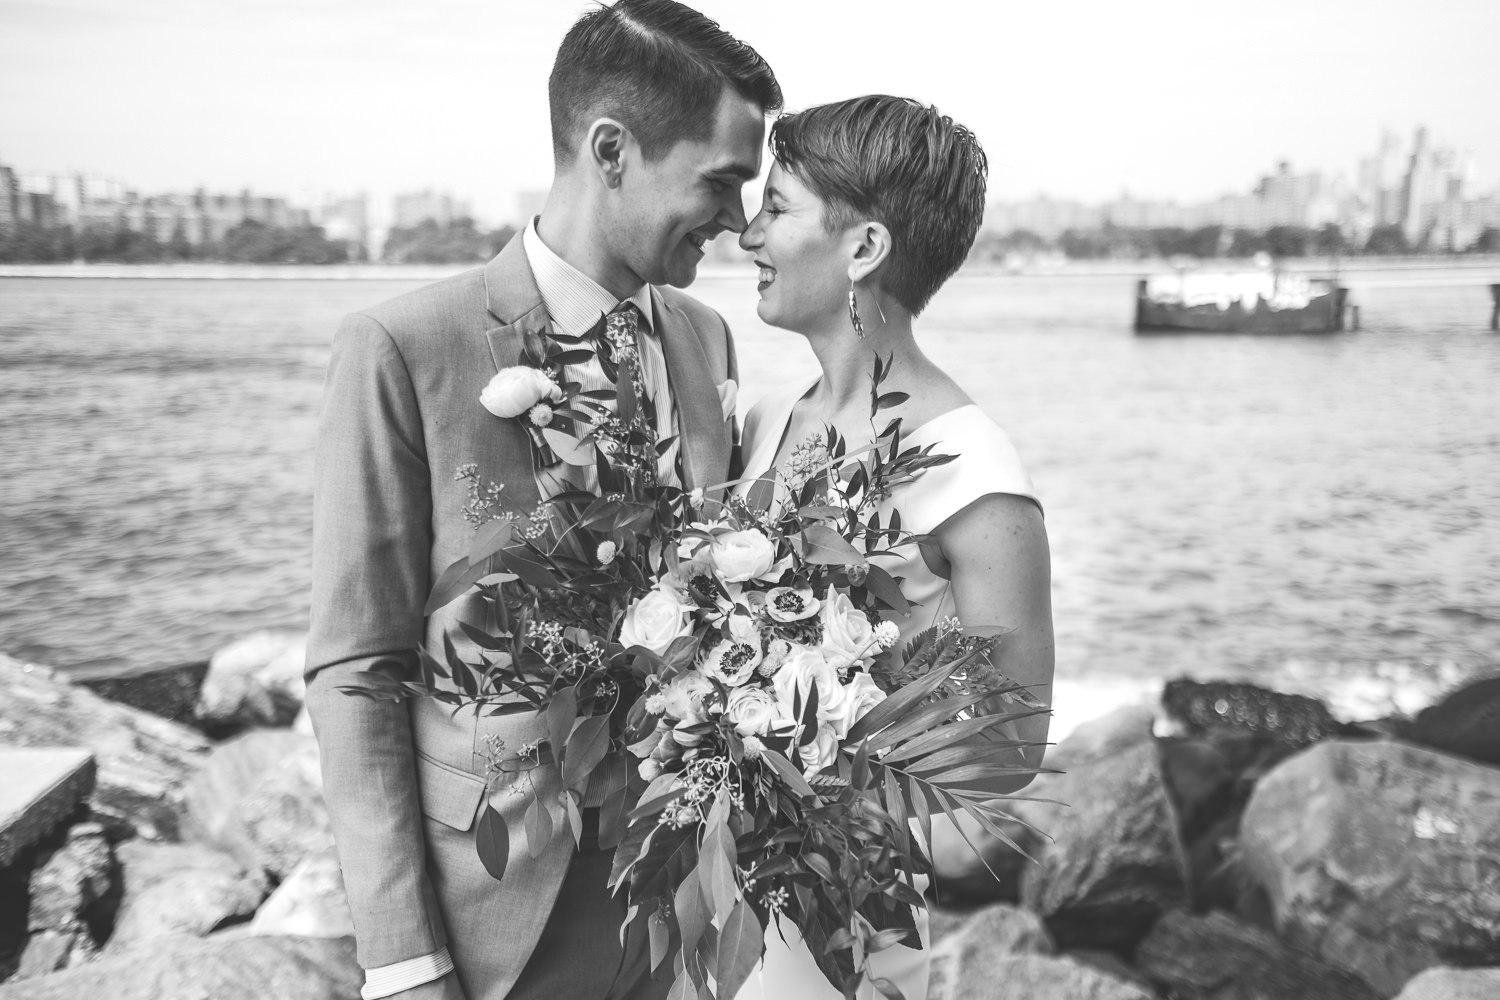 black and white close up of newlyweds noses touching holding flowers